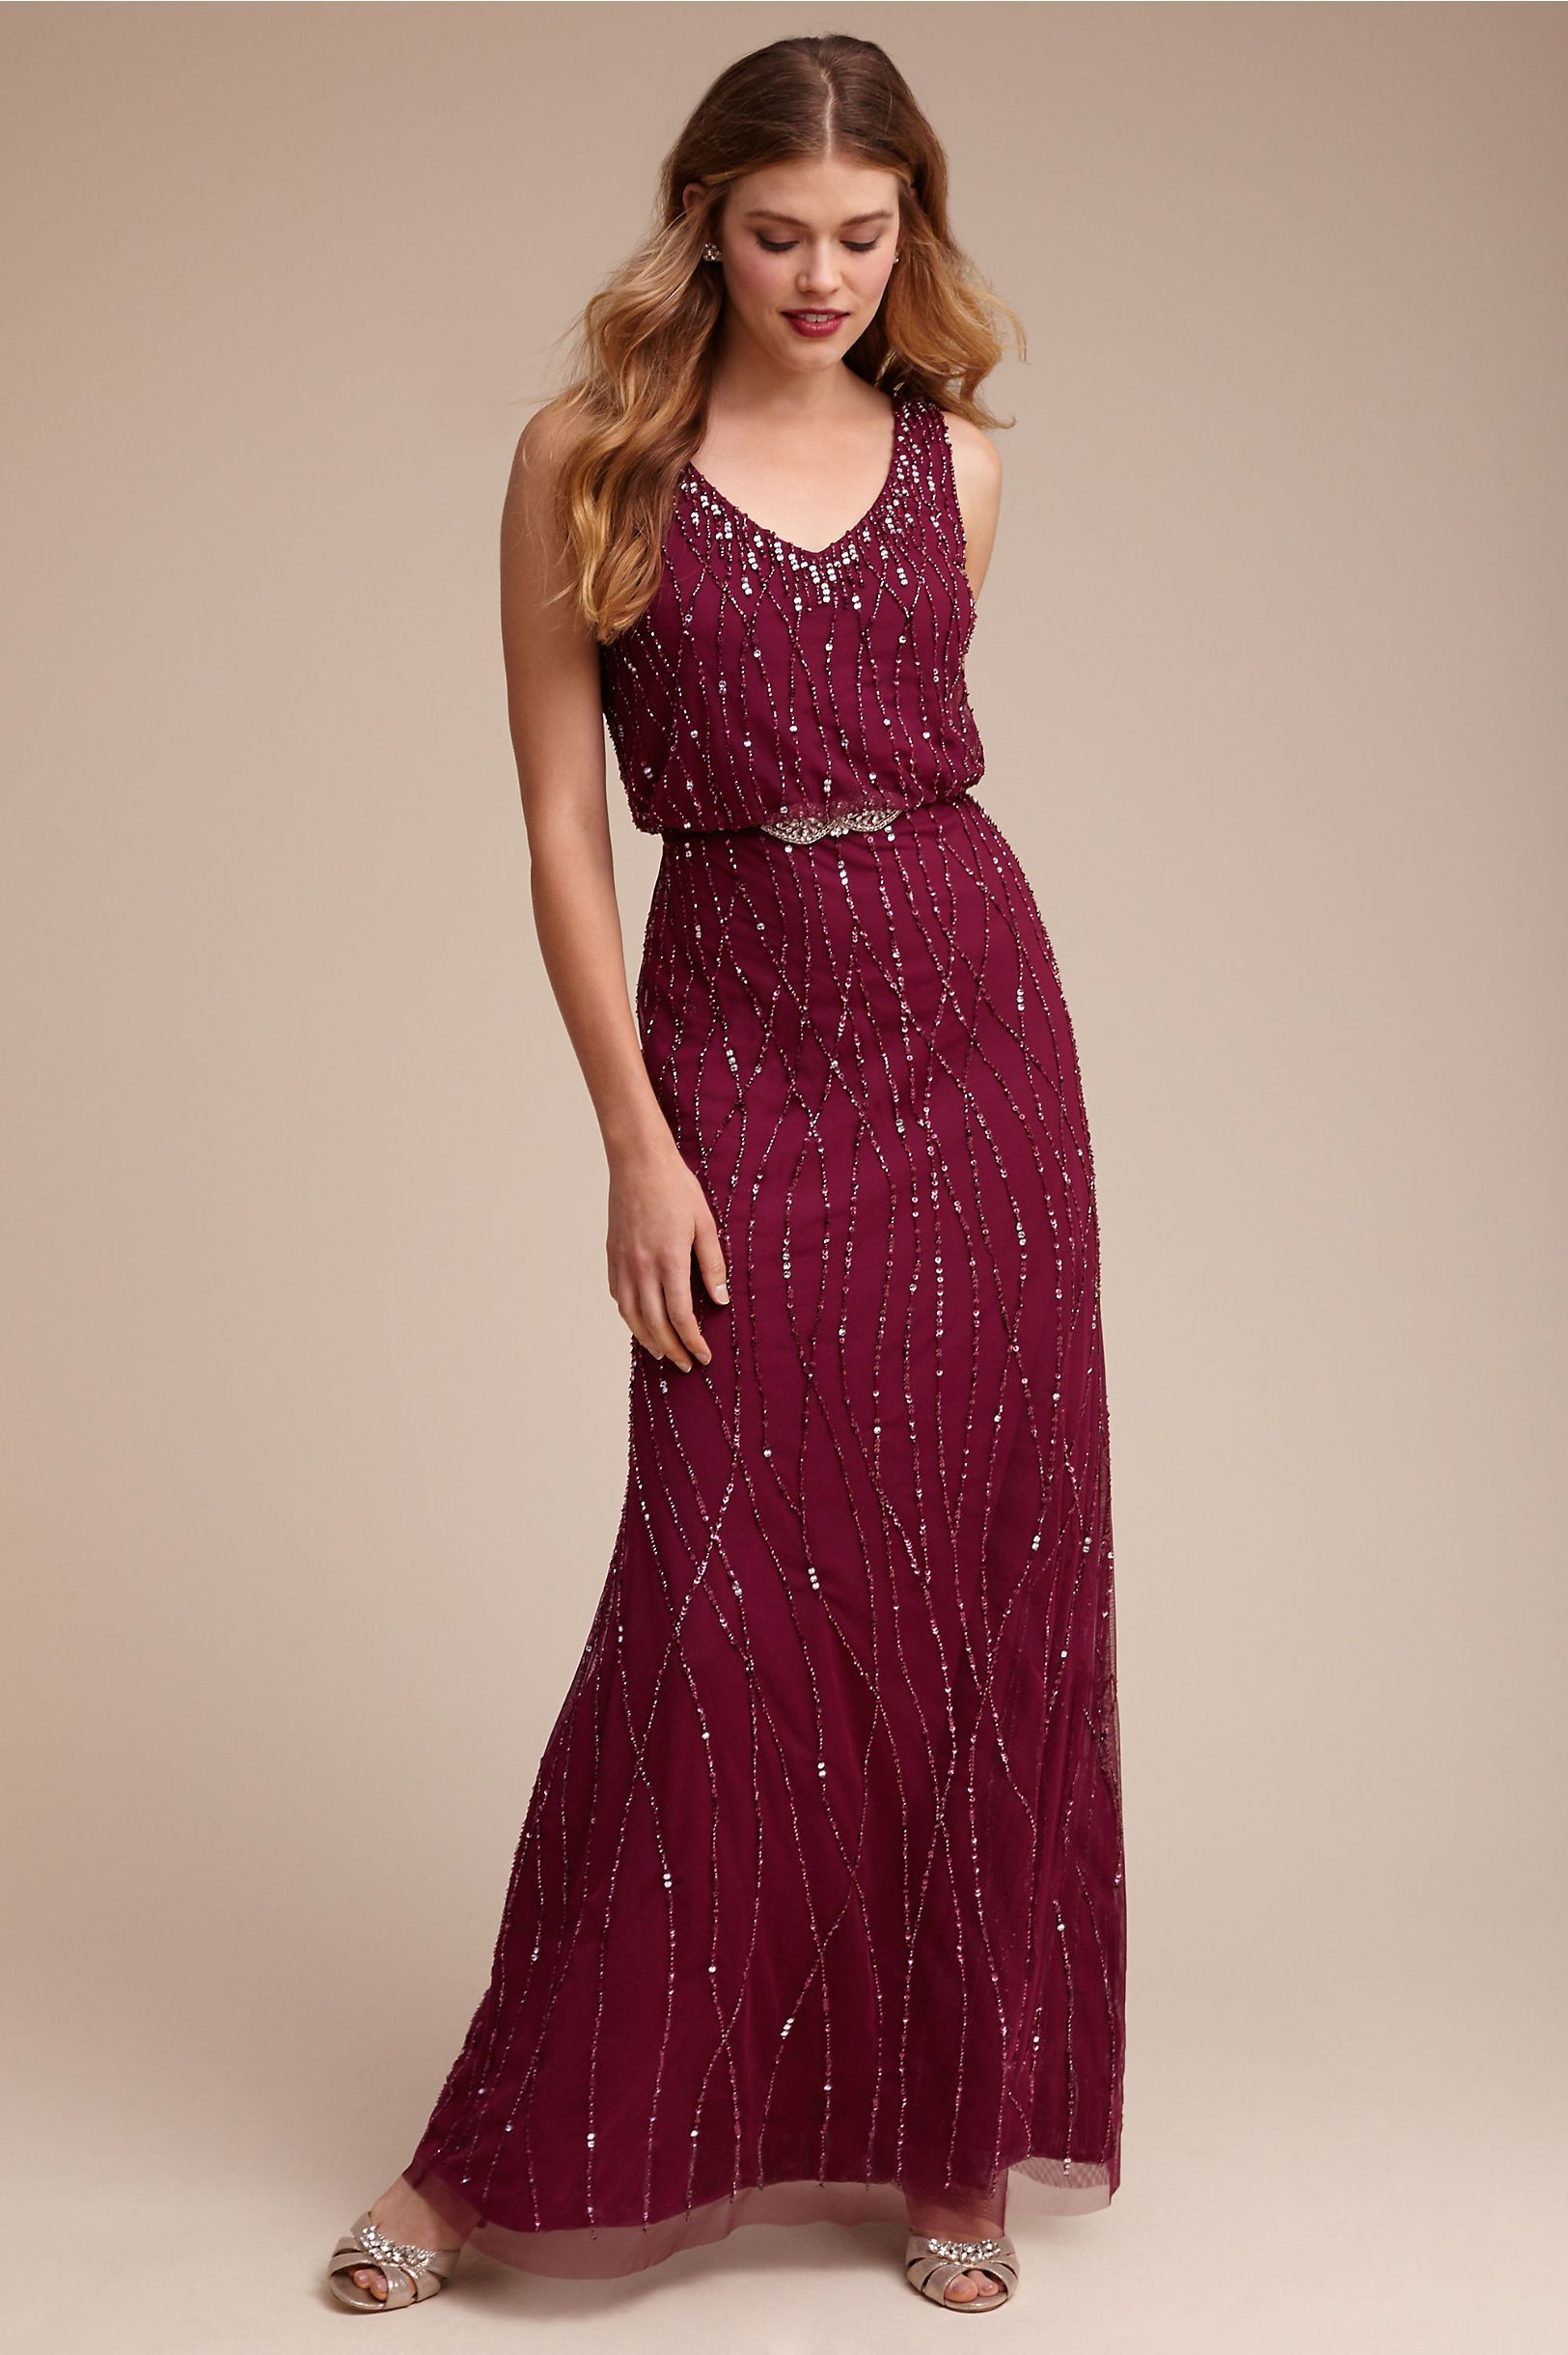 stunning sparkly bridesmaid dresses for a winter wedding